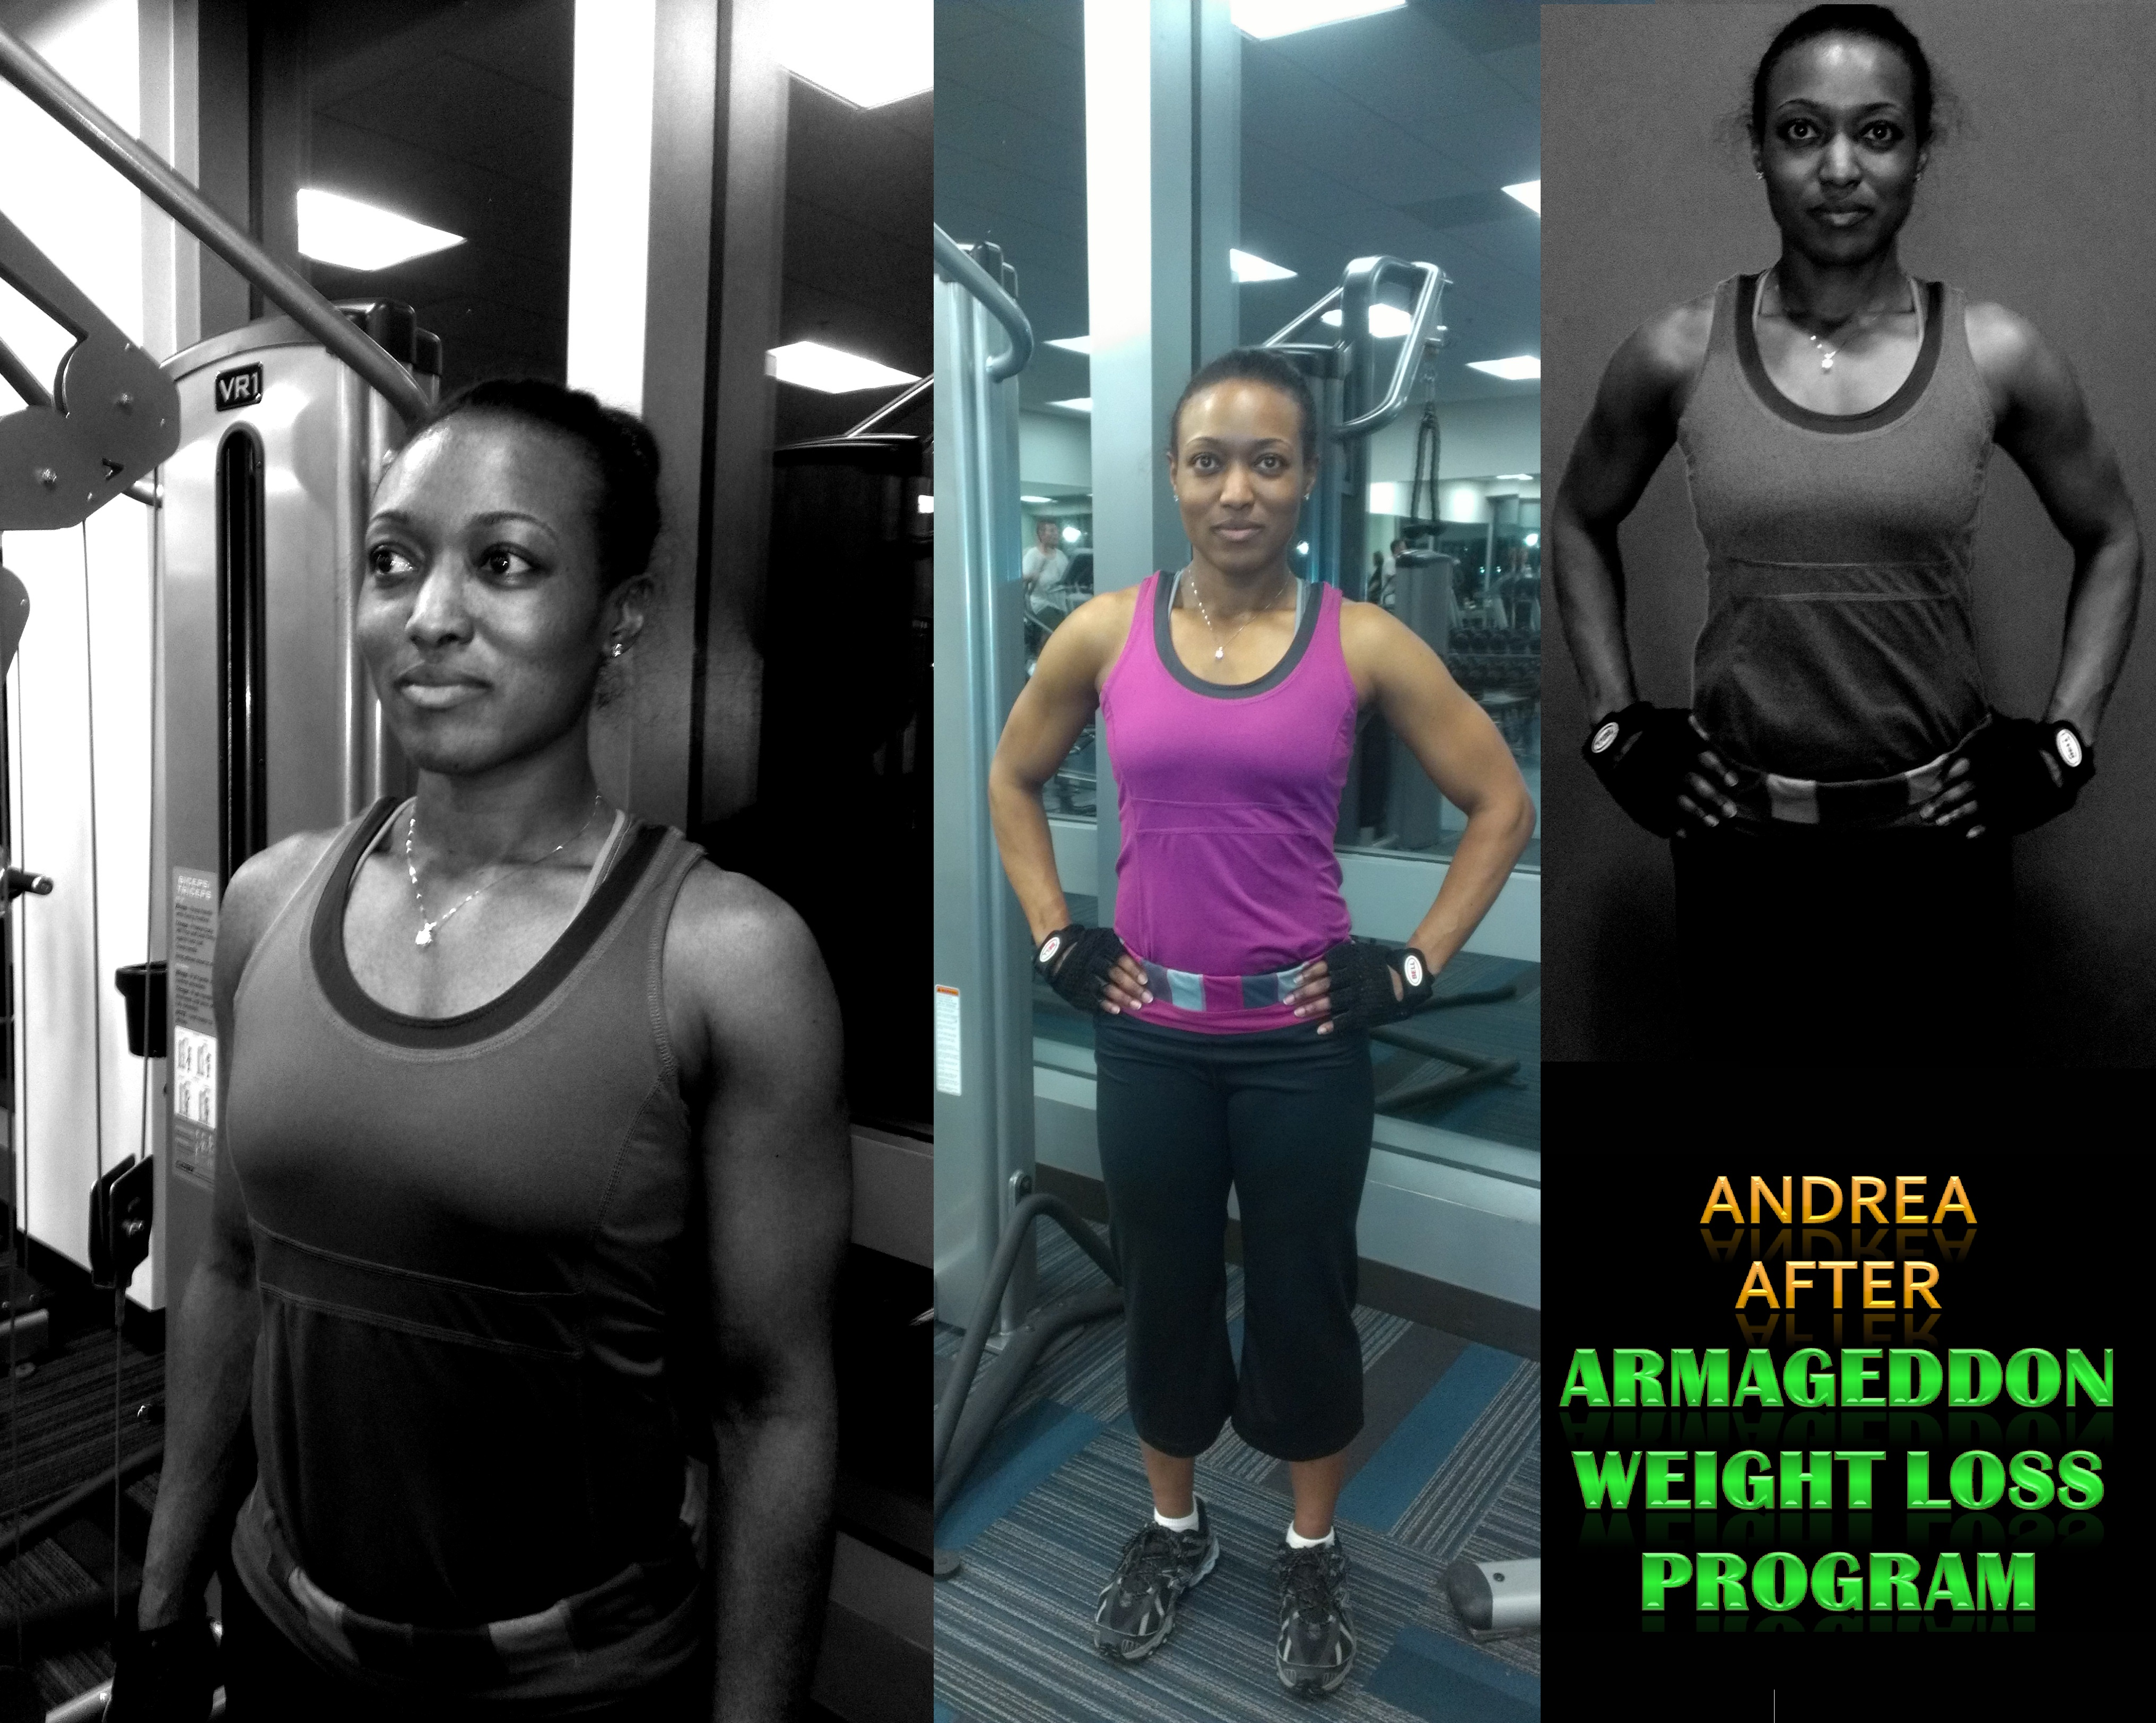 Andrea After Armageddon Weight Loss Exercise DVD Program Nutrition Program Women Men Fitness